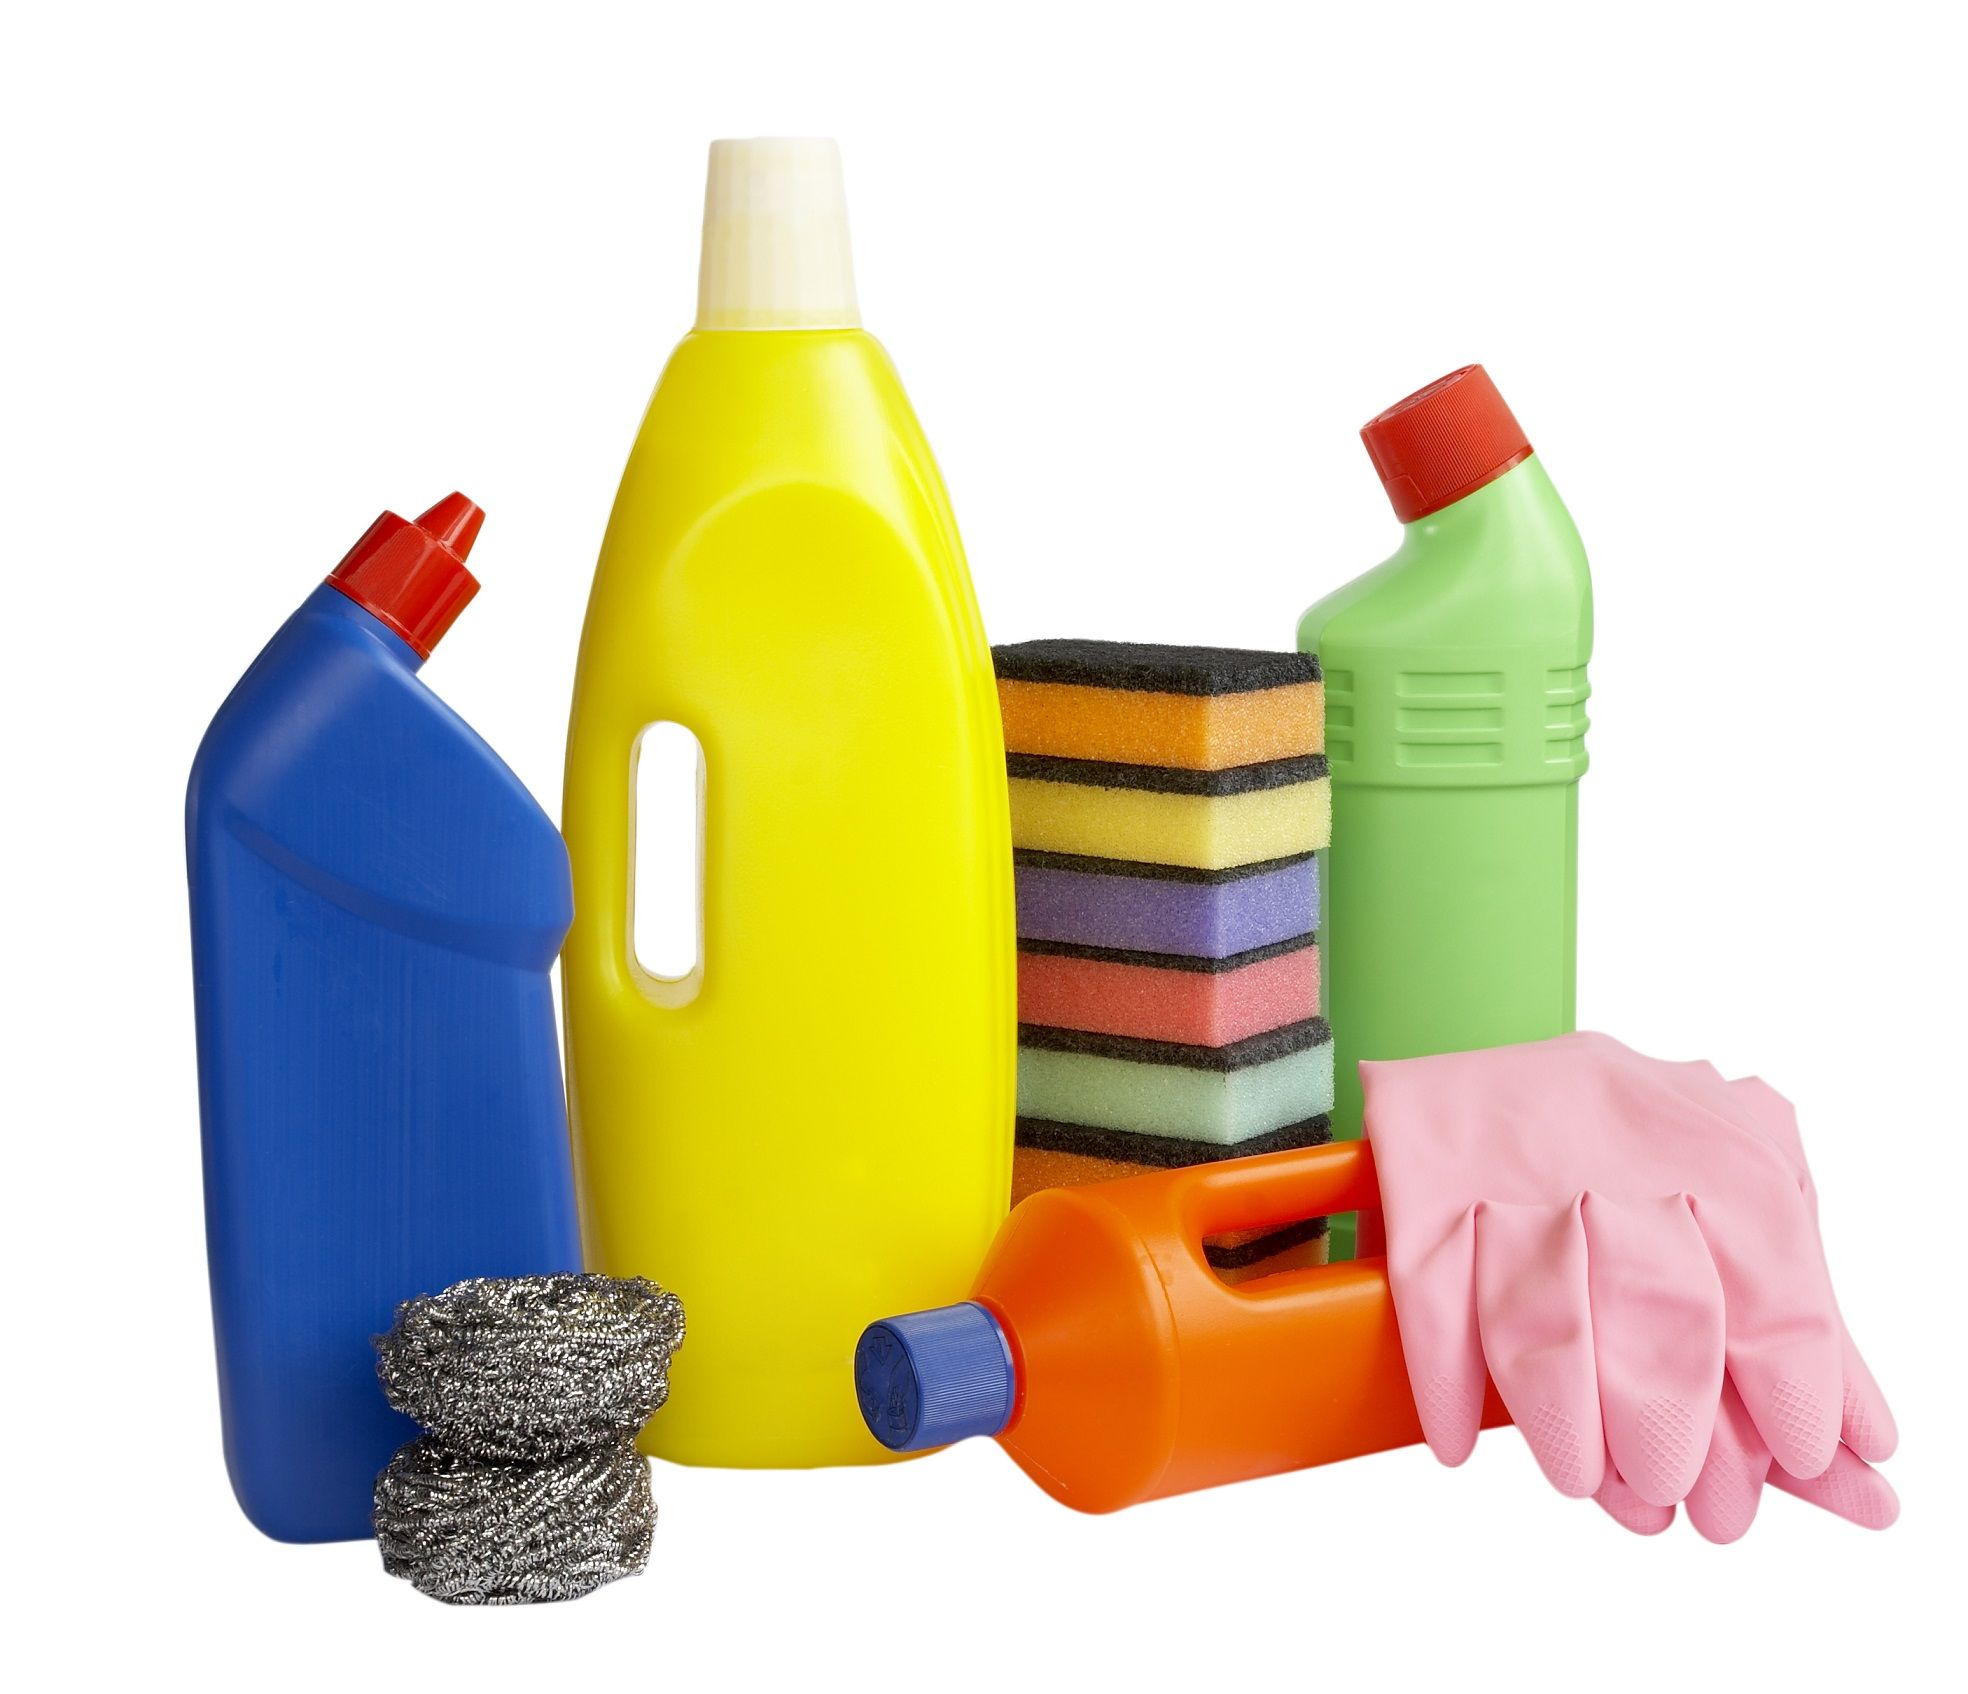 House Cleaning Products | Clean house, Cleaning items, Cleaning